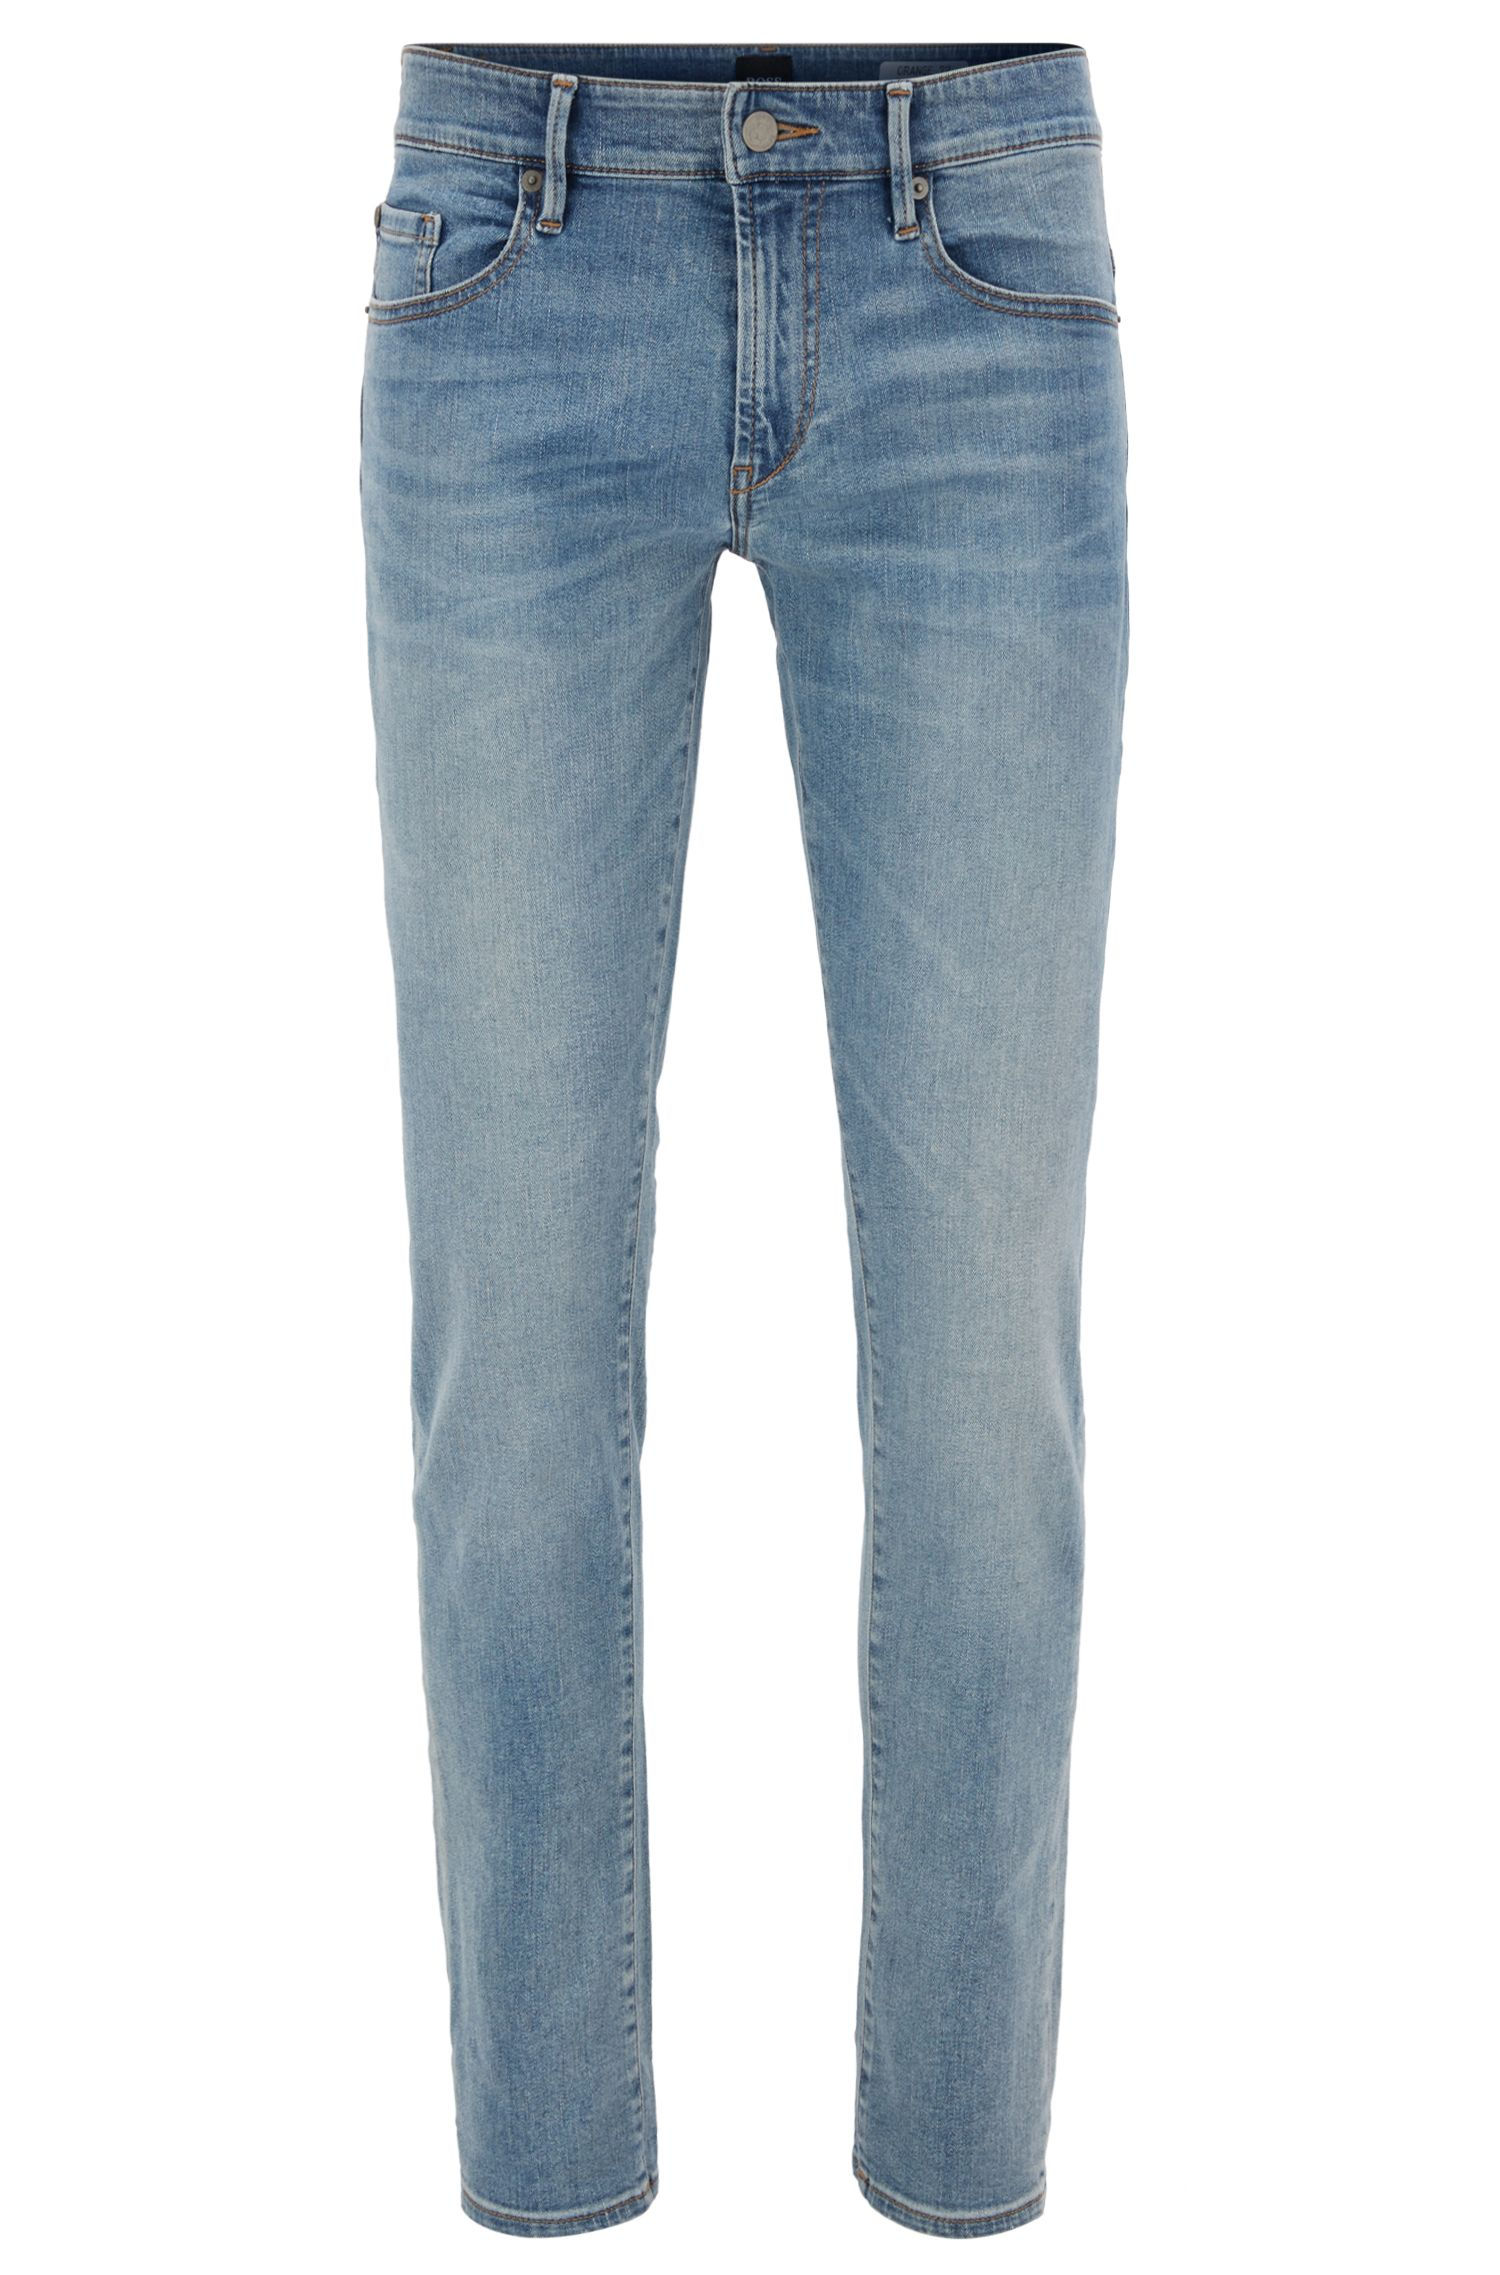 Jean Skinny Fit en denim super stretch bleu clair